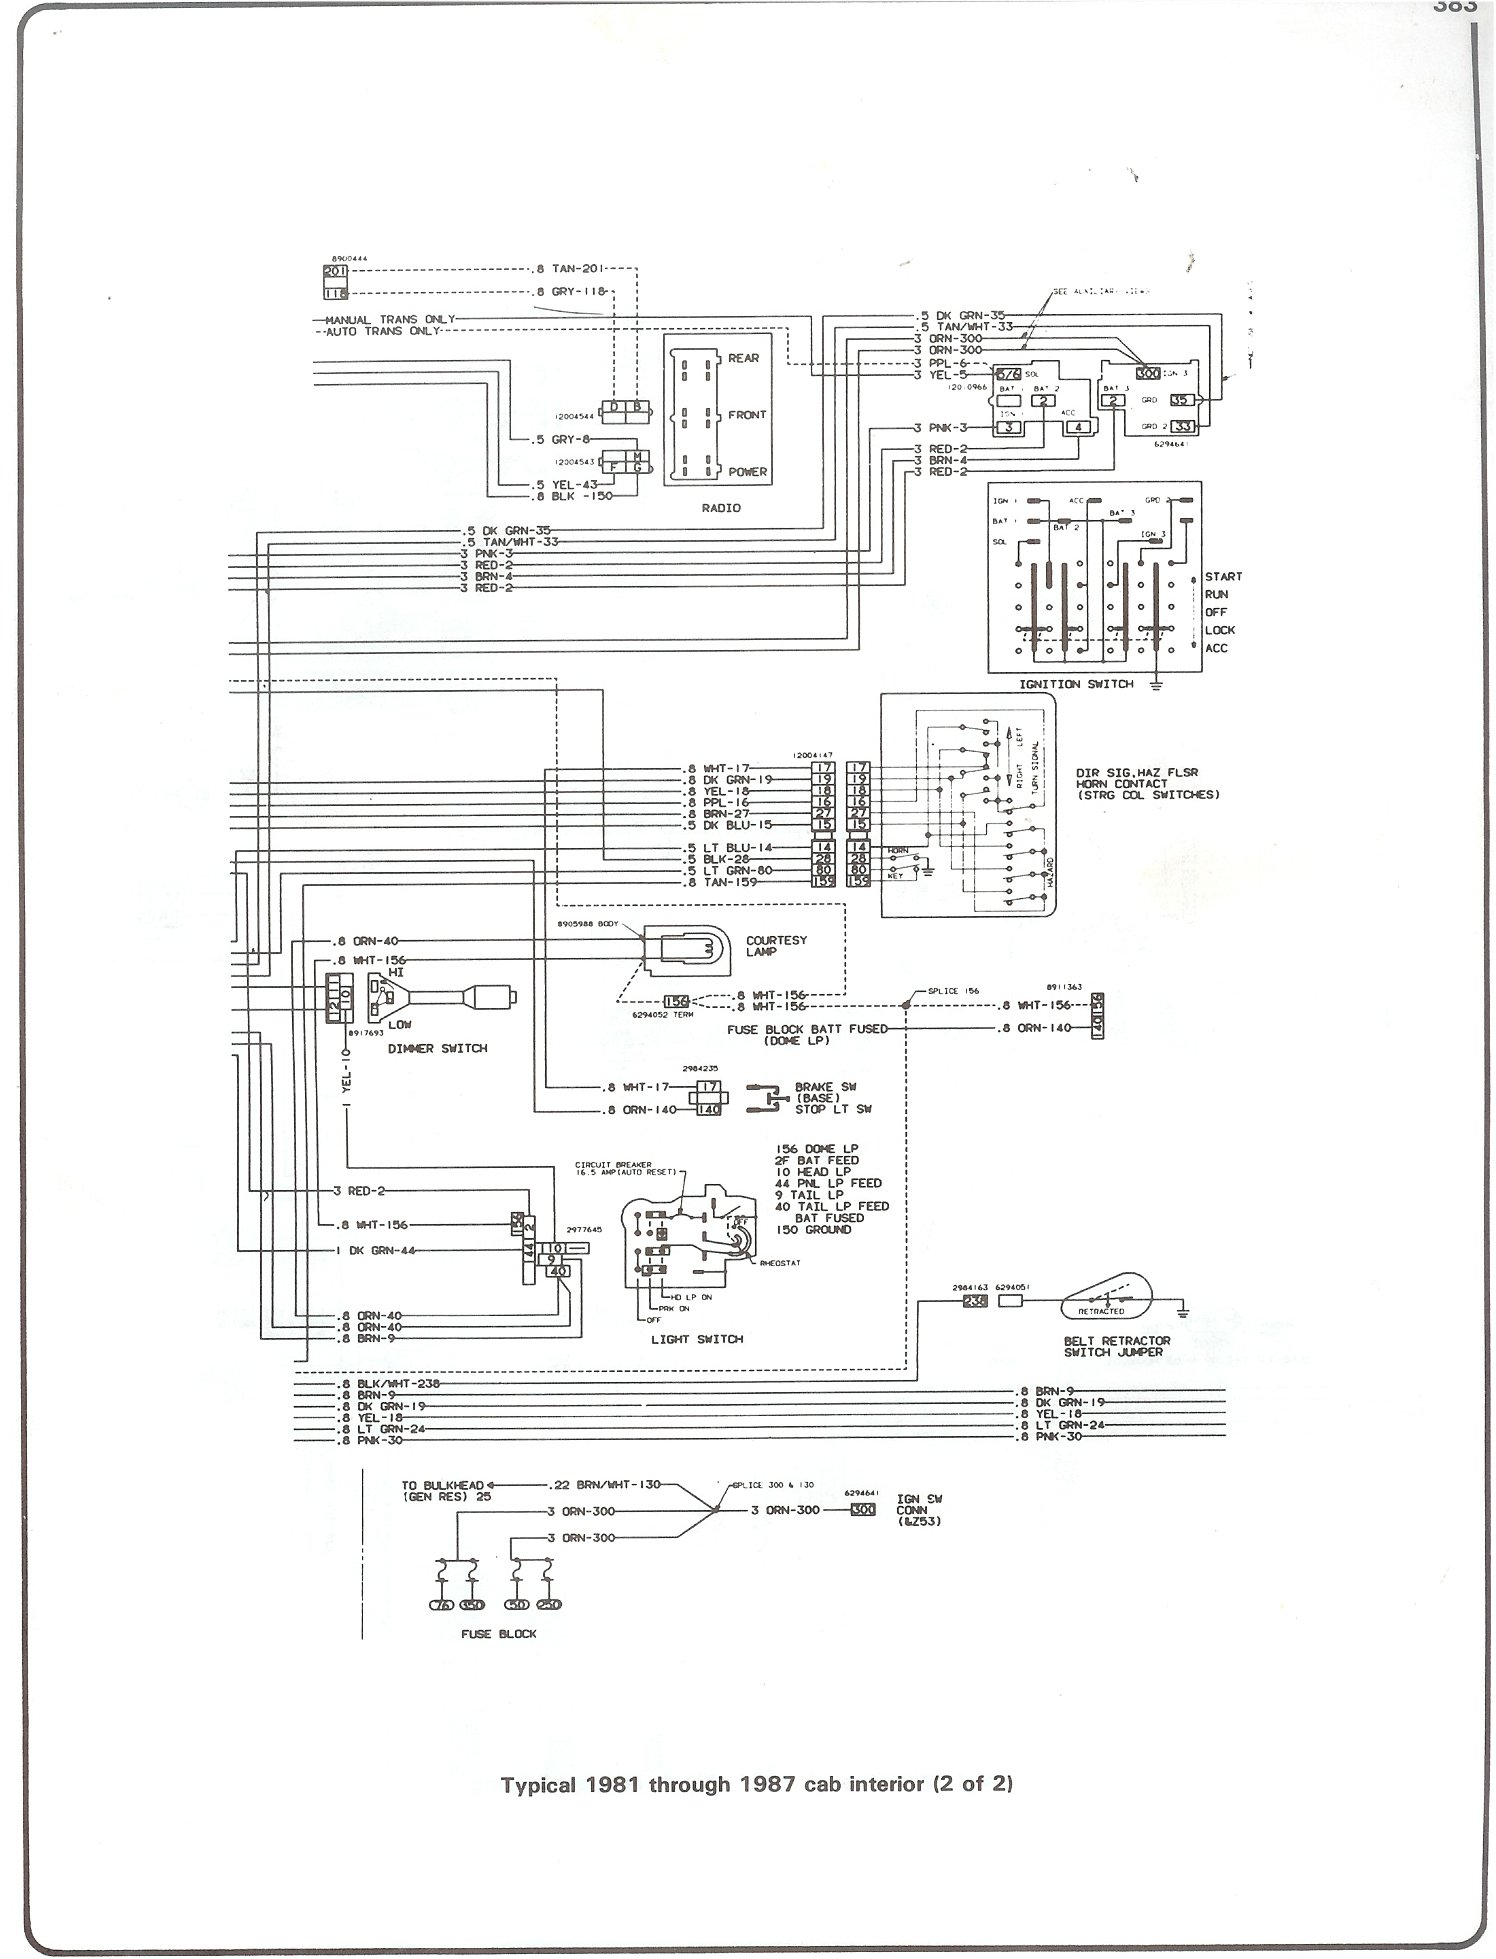 Complete 73 87 Wiring Diagrams 1990 Gmc Sierra 1500 Diagram 81 Cab Interior Page 2